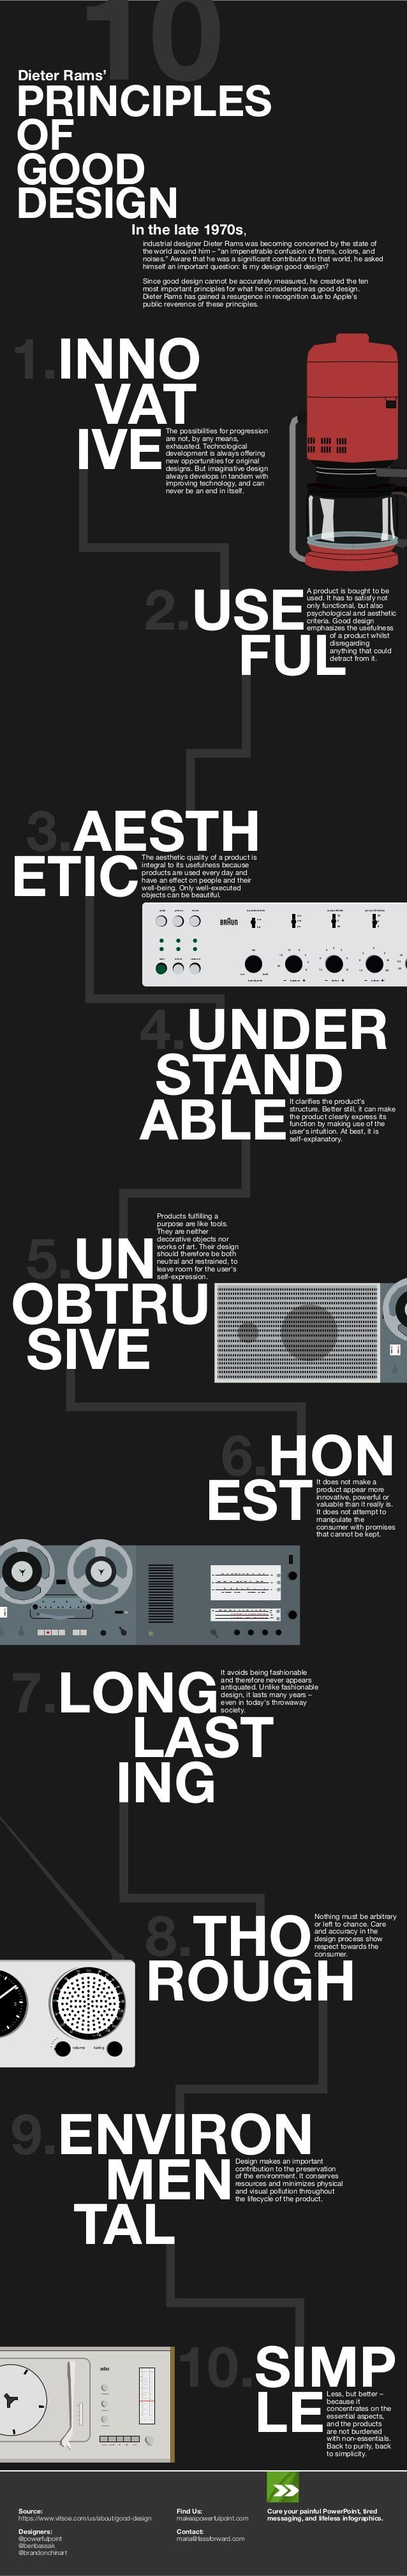 Ux solutions digital art director and motion designer based in noosa - Dieter Rams 10 Principles Of Good Design By Gavin Mcmahon Fassforward Consulting Group